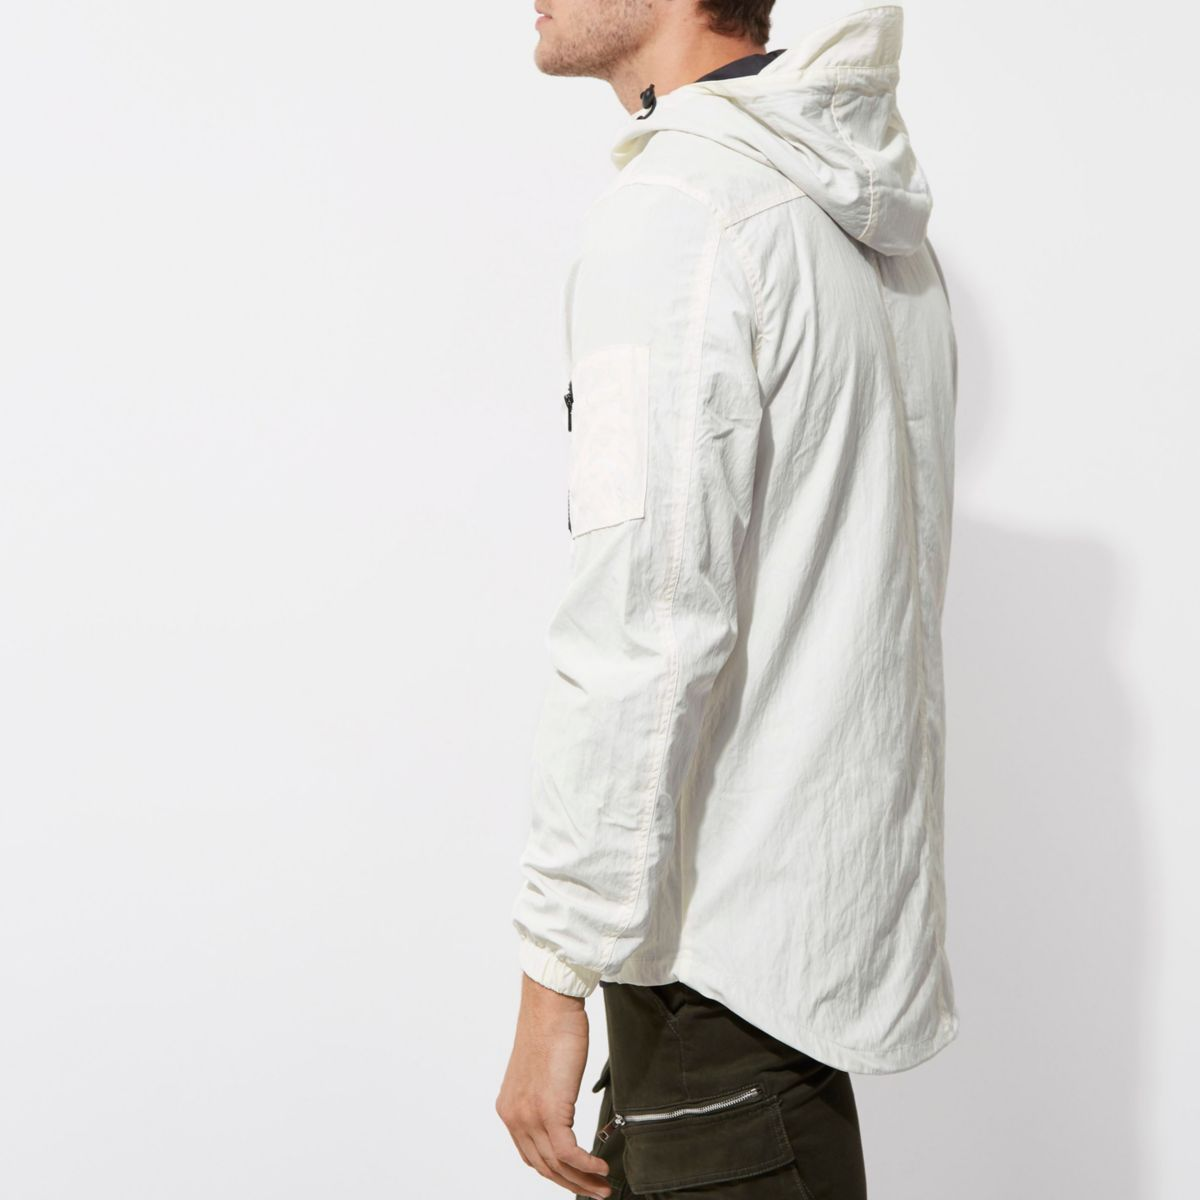 White Hooded Lightweight Jacket by River Island